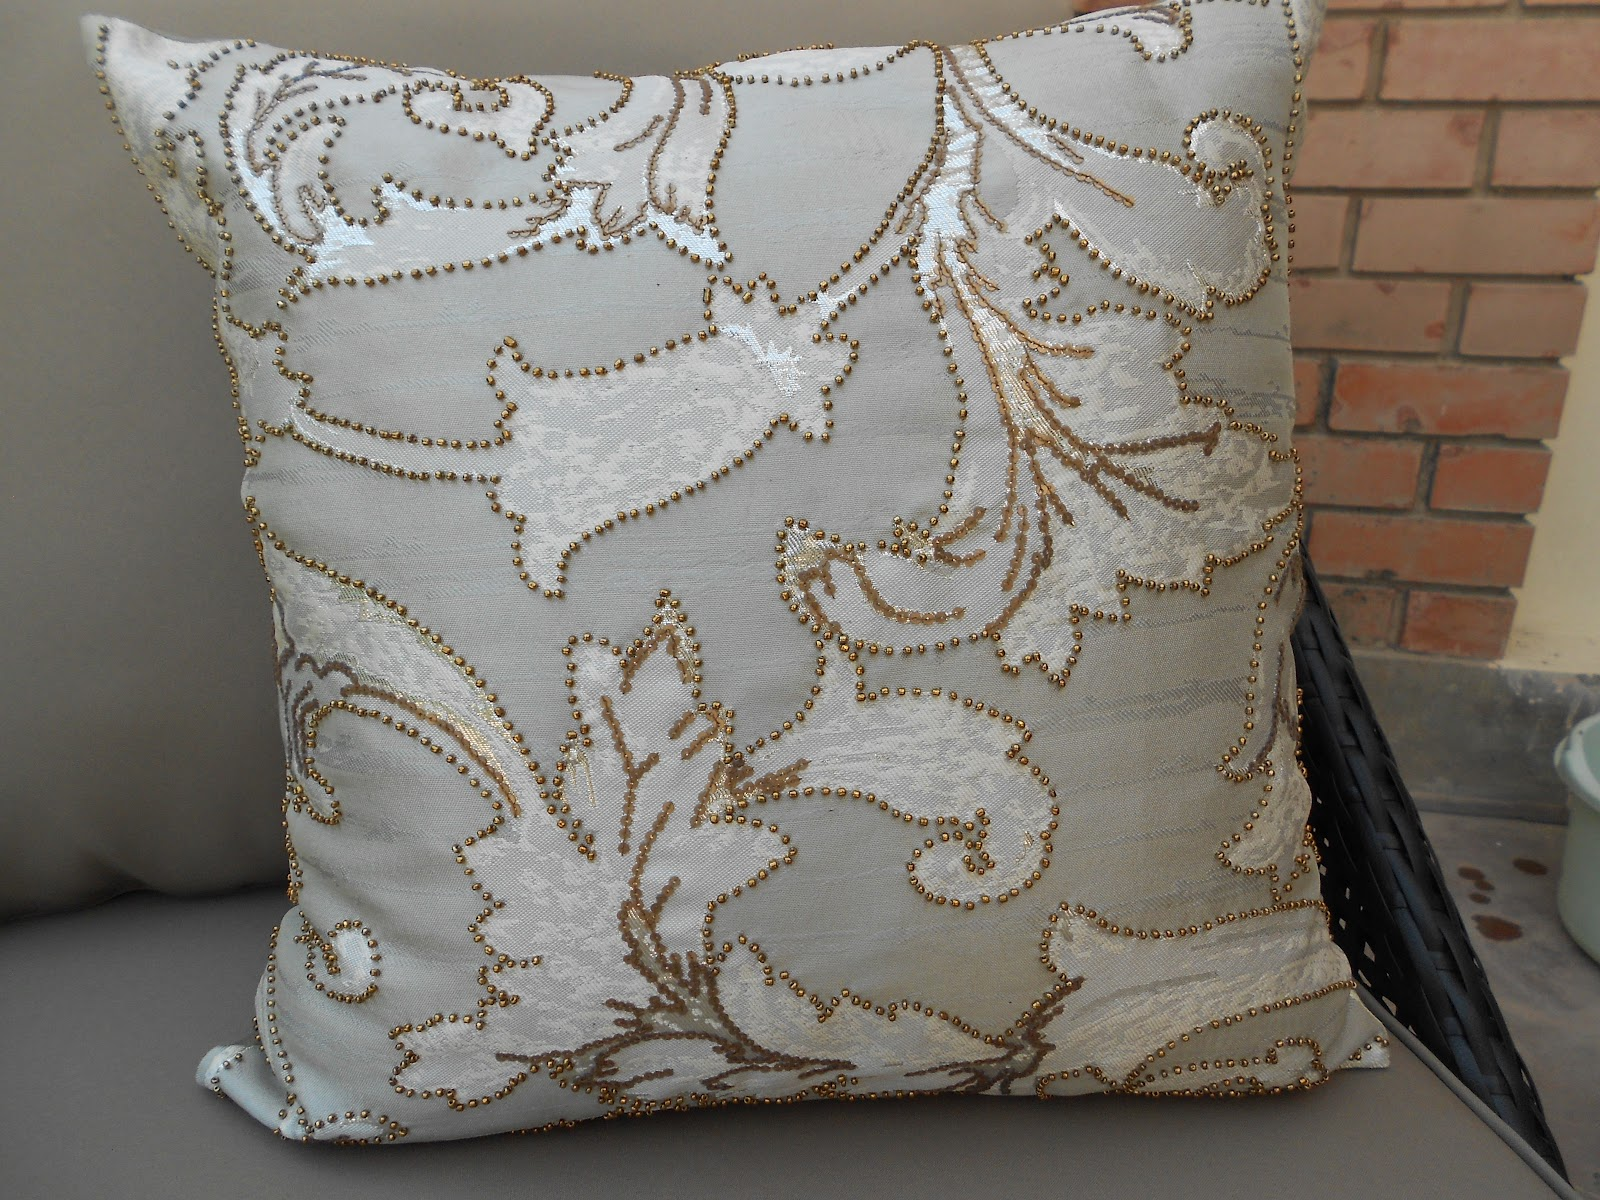 Ribbons and spoons: silver grey sofa throw and accent pillow cover